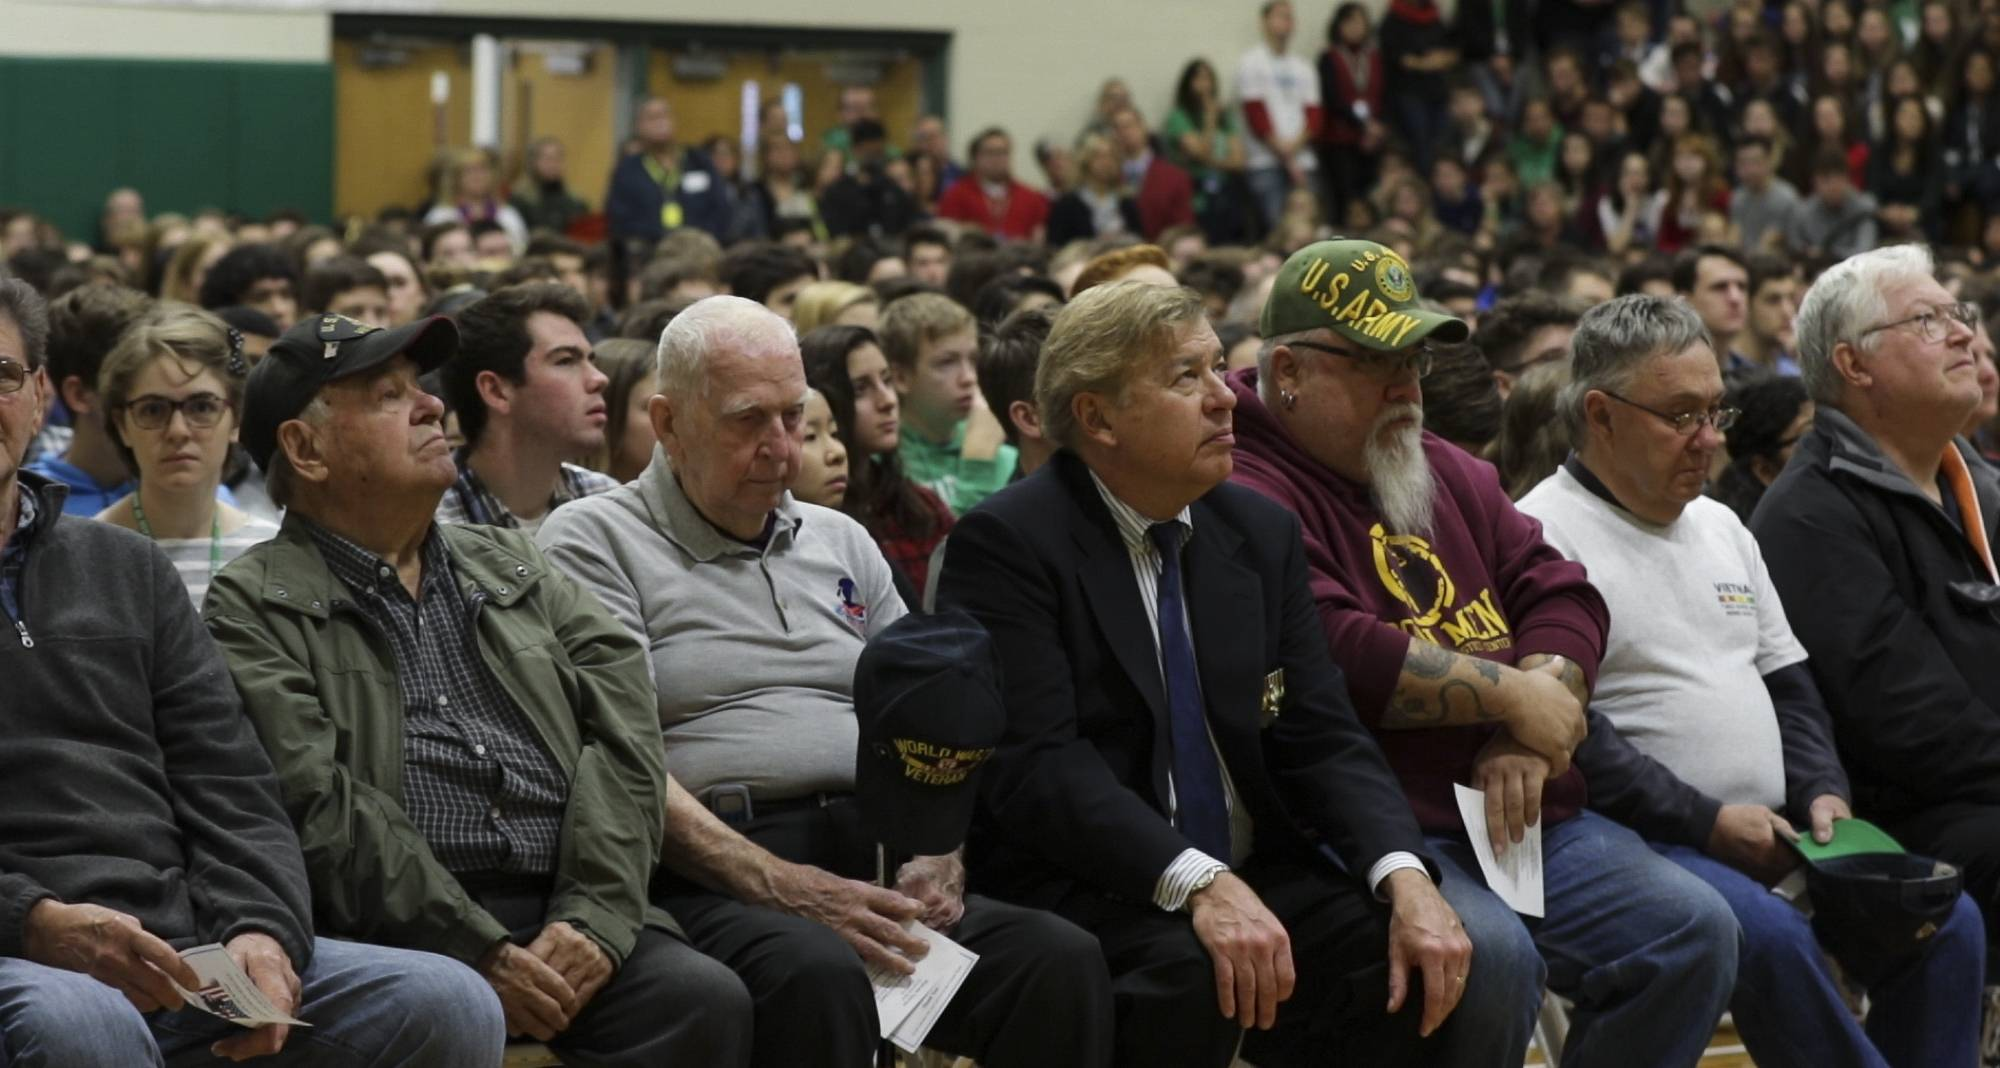 Veterans attend a ceremony in their honor at York High School.